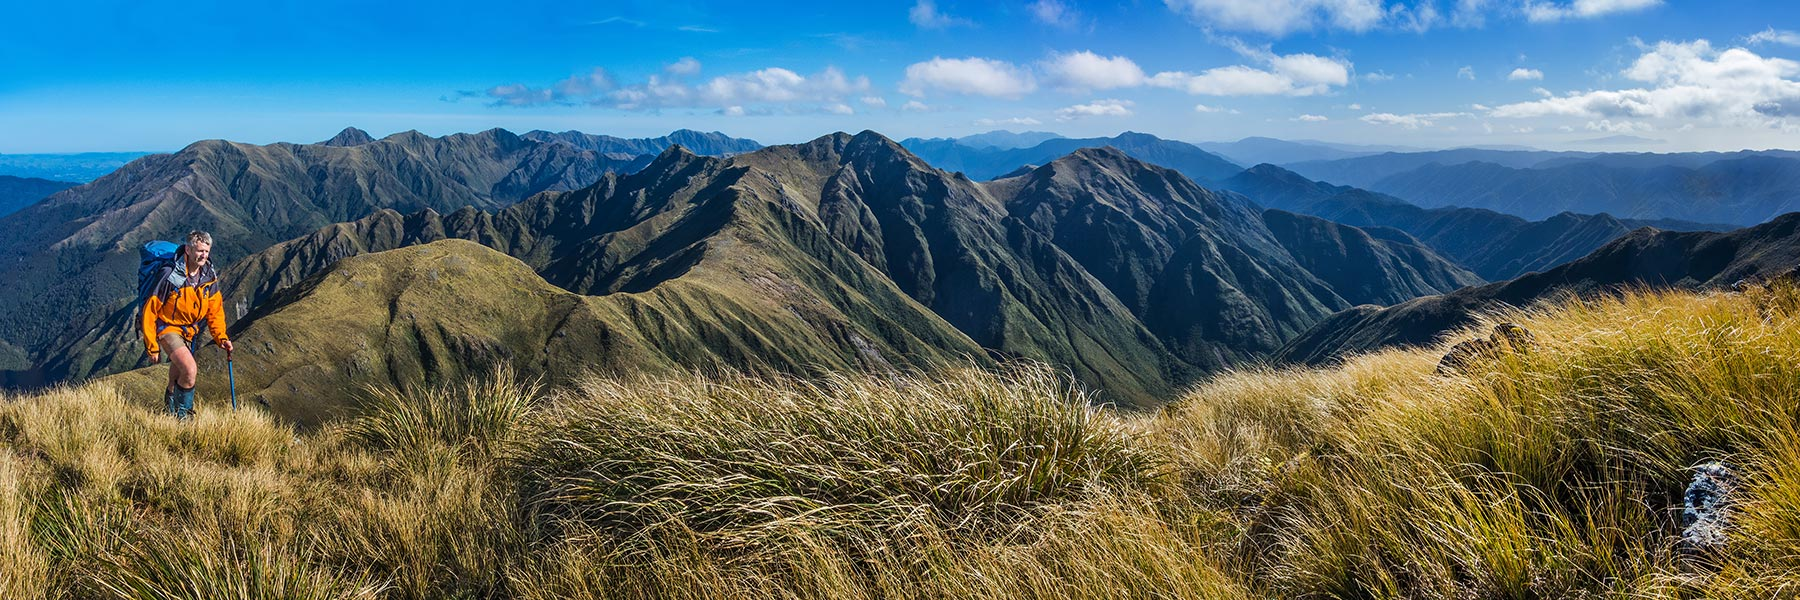 Wide views - North Island, New Zealand - Occasional Climber